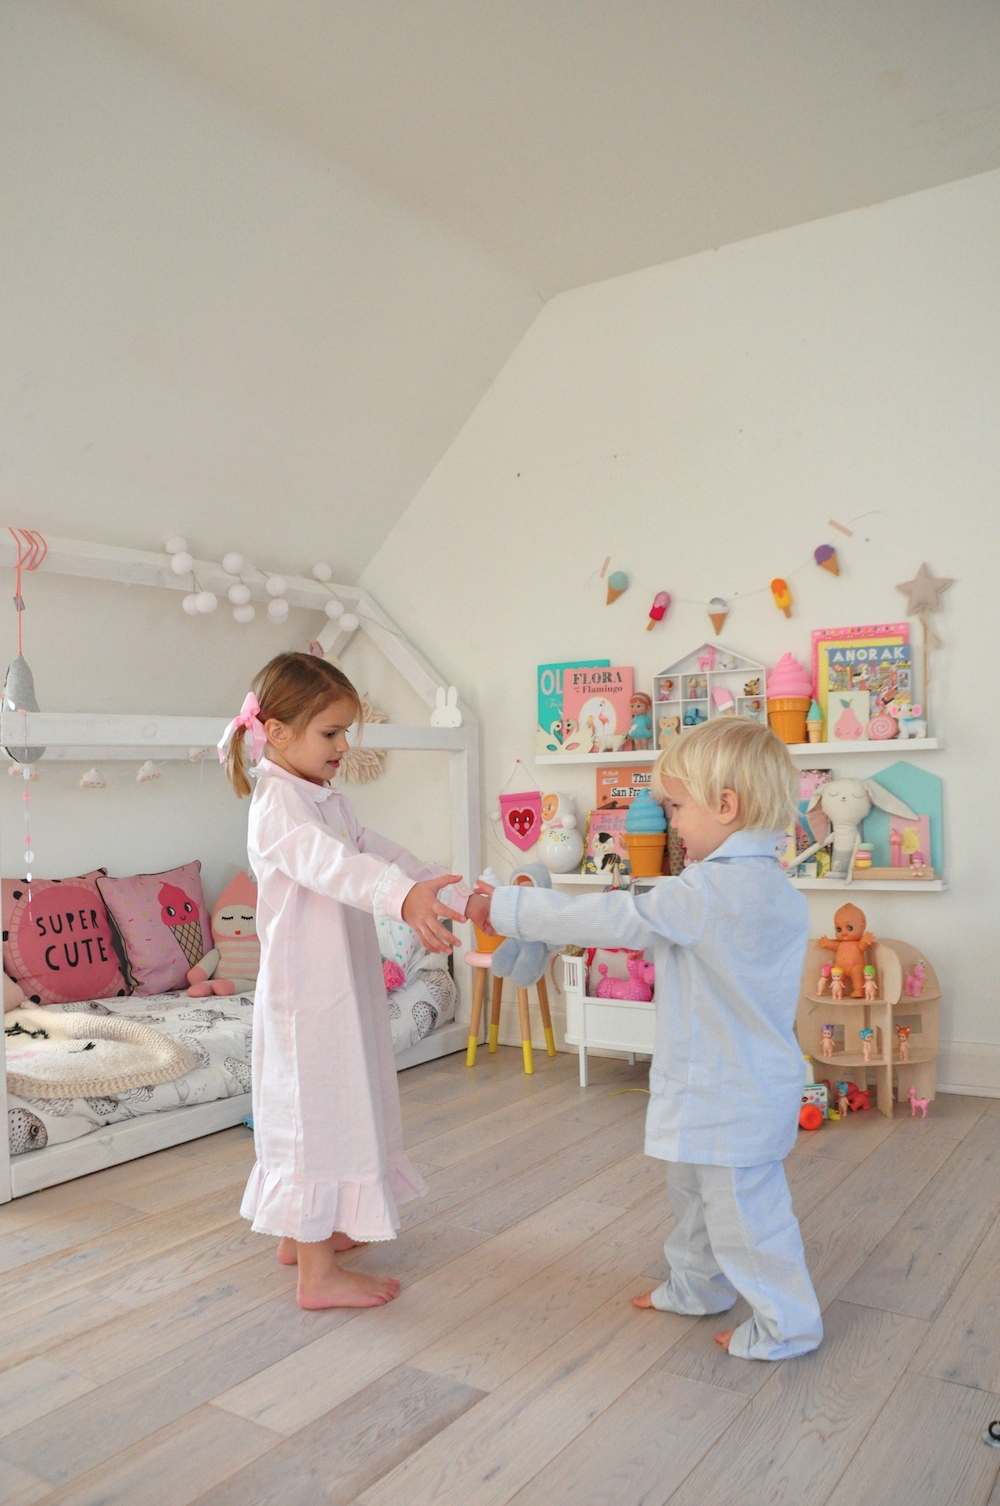 childrens_My_little_shop_pyjamas